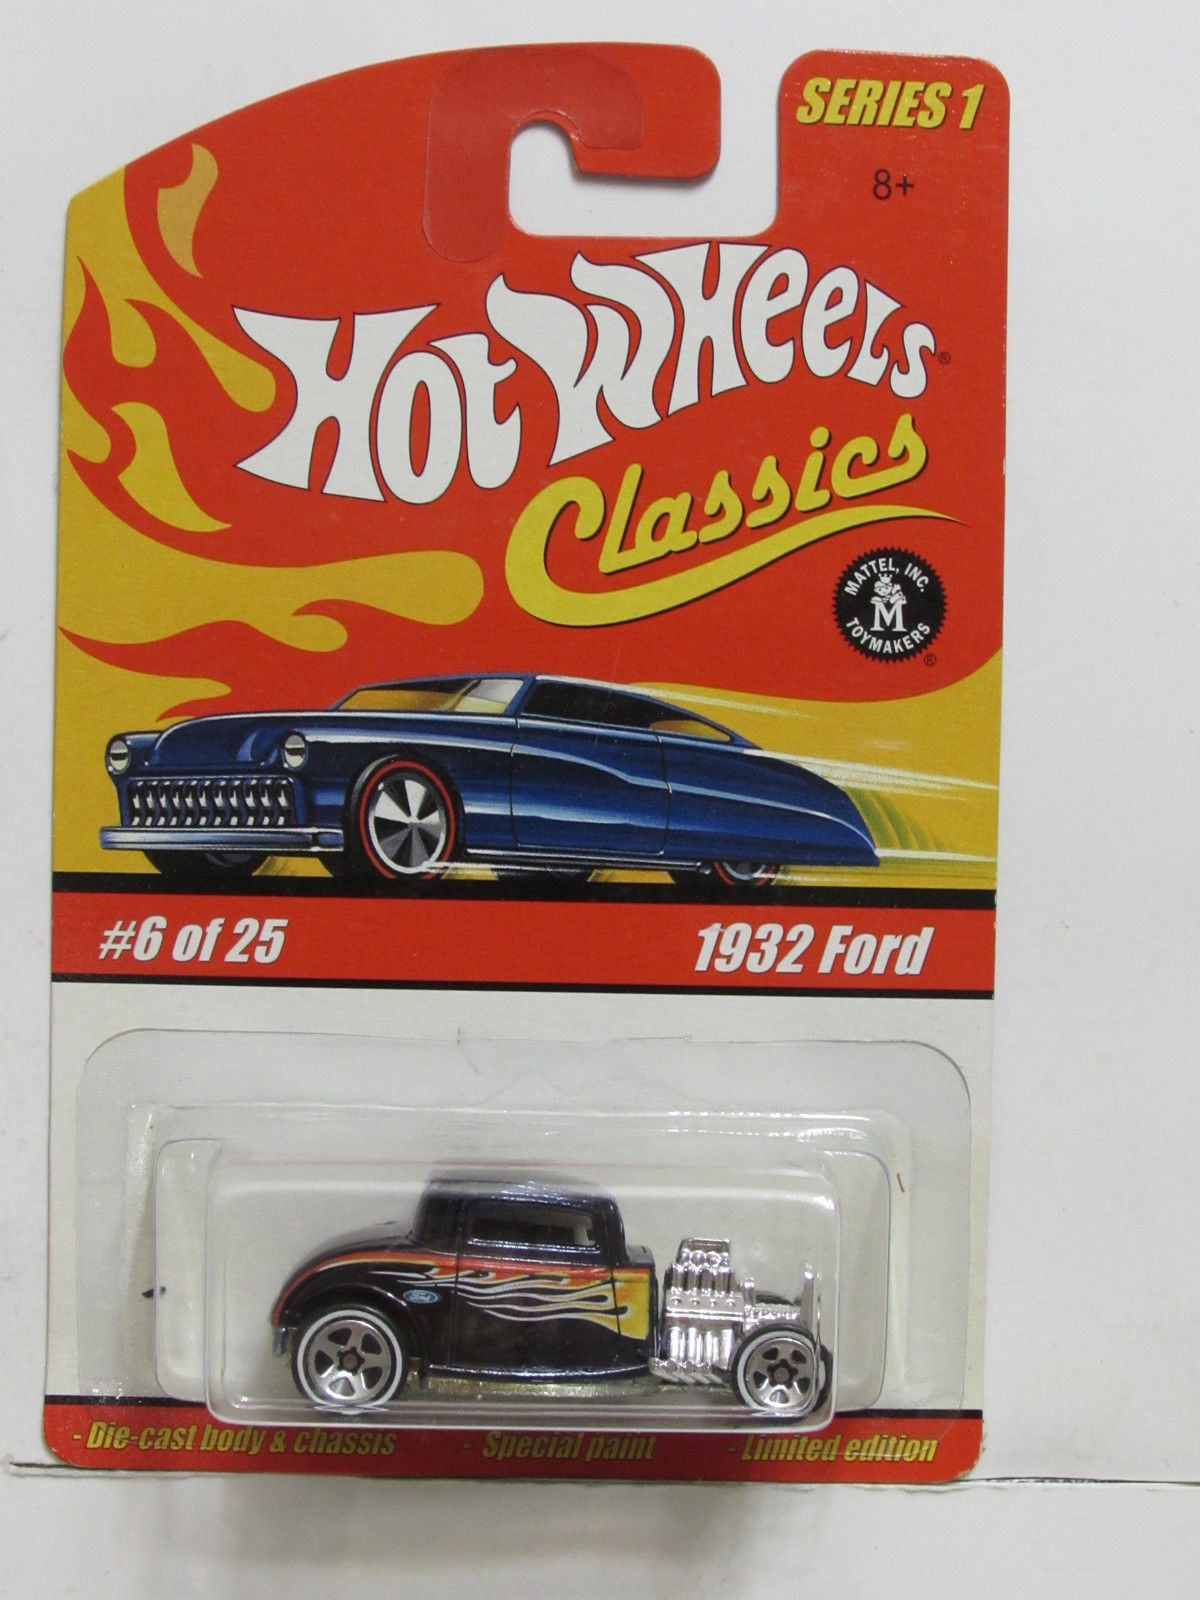 HOT WHEELS CLASSICS SERIES 1 #6/25 1932 FORD GRAY